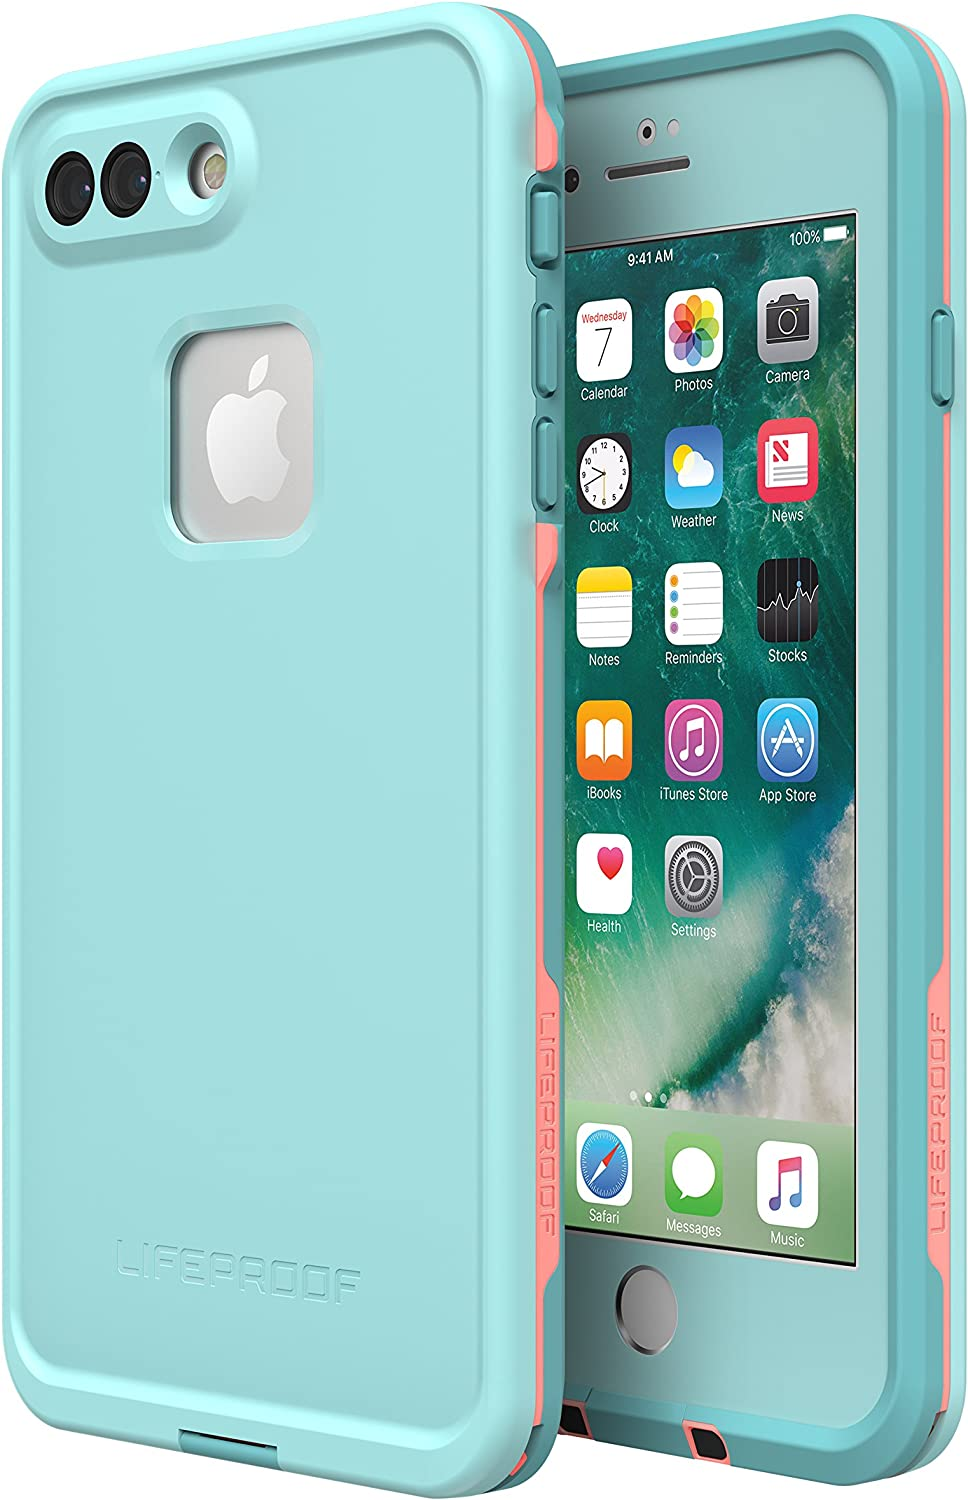 Lifeproof FRē Series Waterproof Case for Iphone 8 Plus & 7 Plus - Retail Packaging - Wipeout (Blue Tint/Fusion Coral/Mandalay Bay)